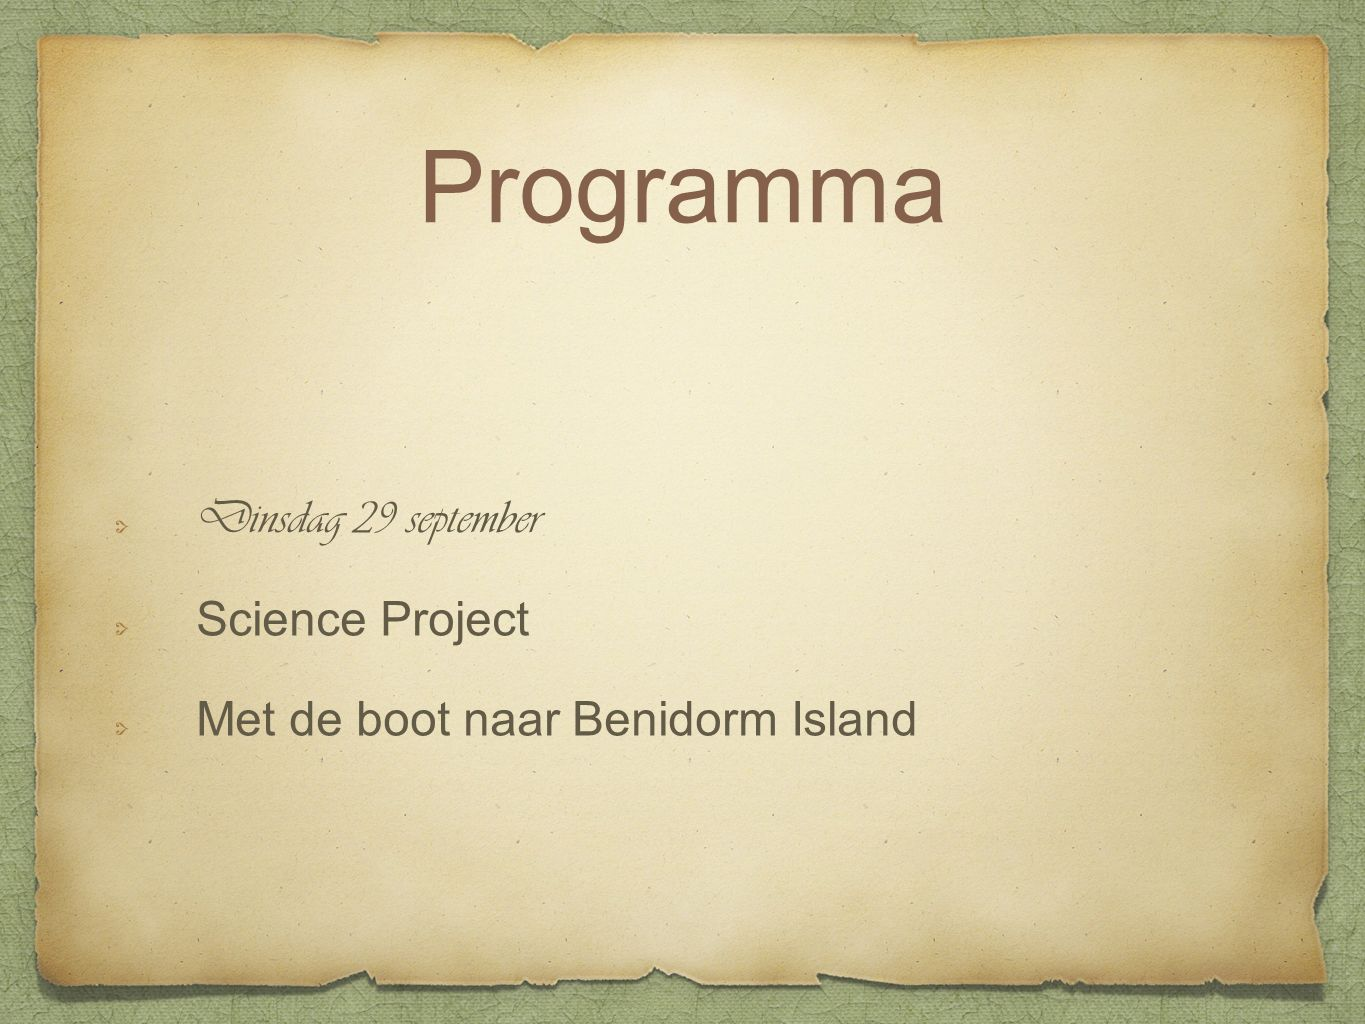 Dinsdag 29 september Science Project Met de boot naar Benidorm Island